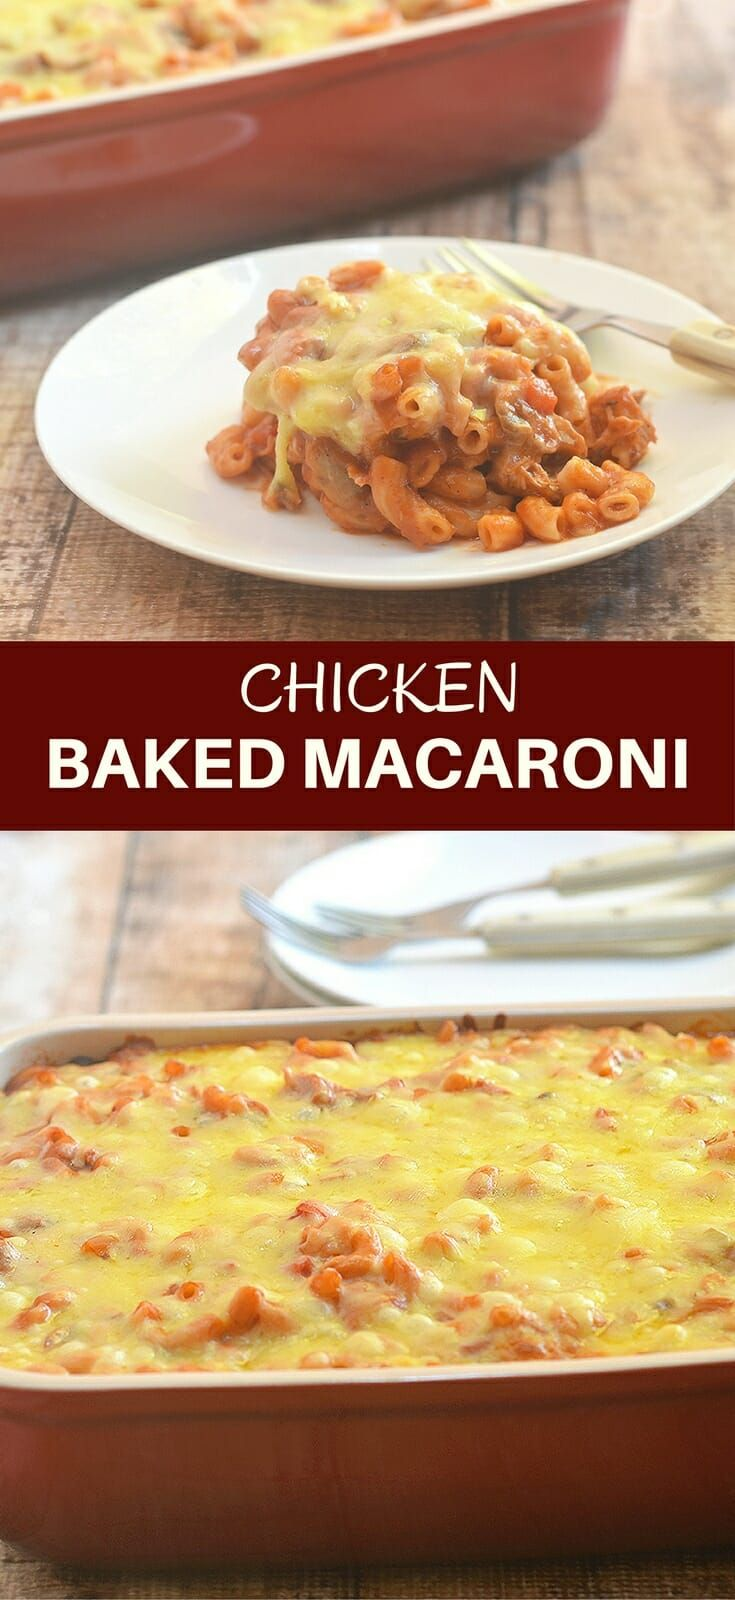 Filipino-style Chicken Baked Macaroni with elbow macaroni, shredded chicken in tomato sauce and cheese topping. Perfect for family dinners or holiday parties!